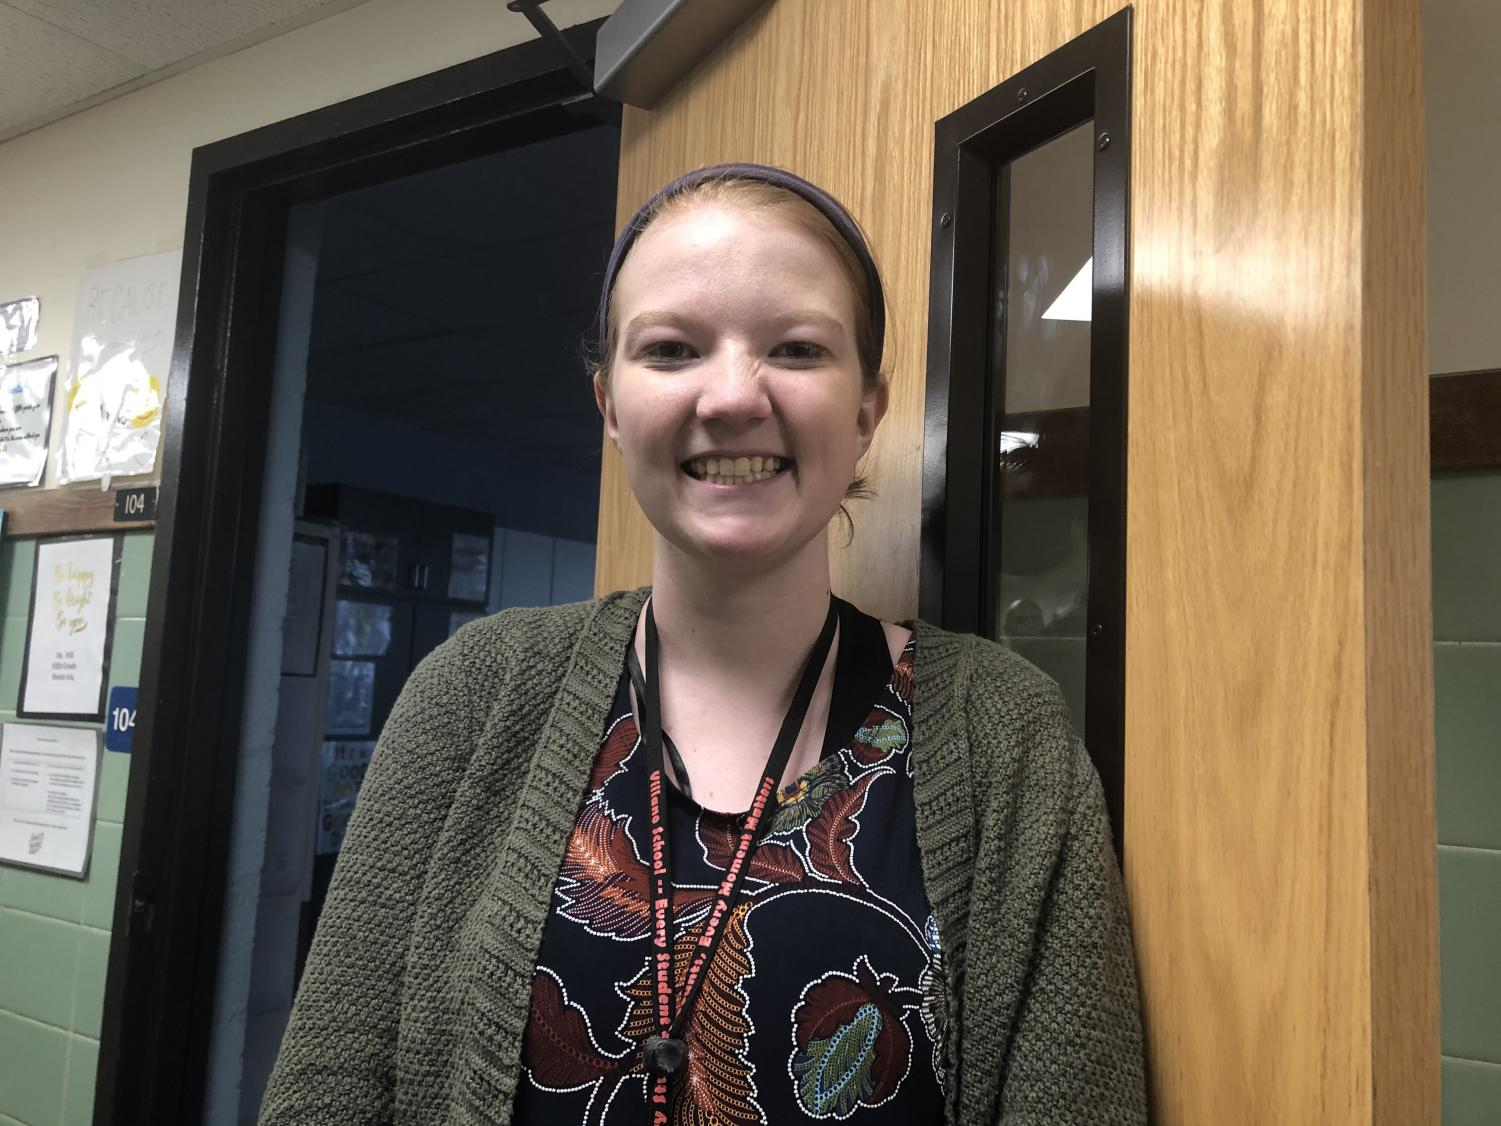 Erin Albin joined the staff of Patrick M. Villano School this year. She teaches Language Arts and Math.